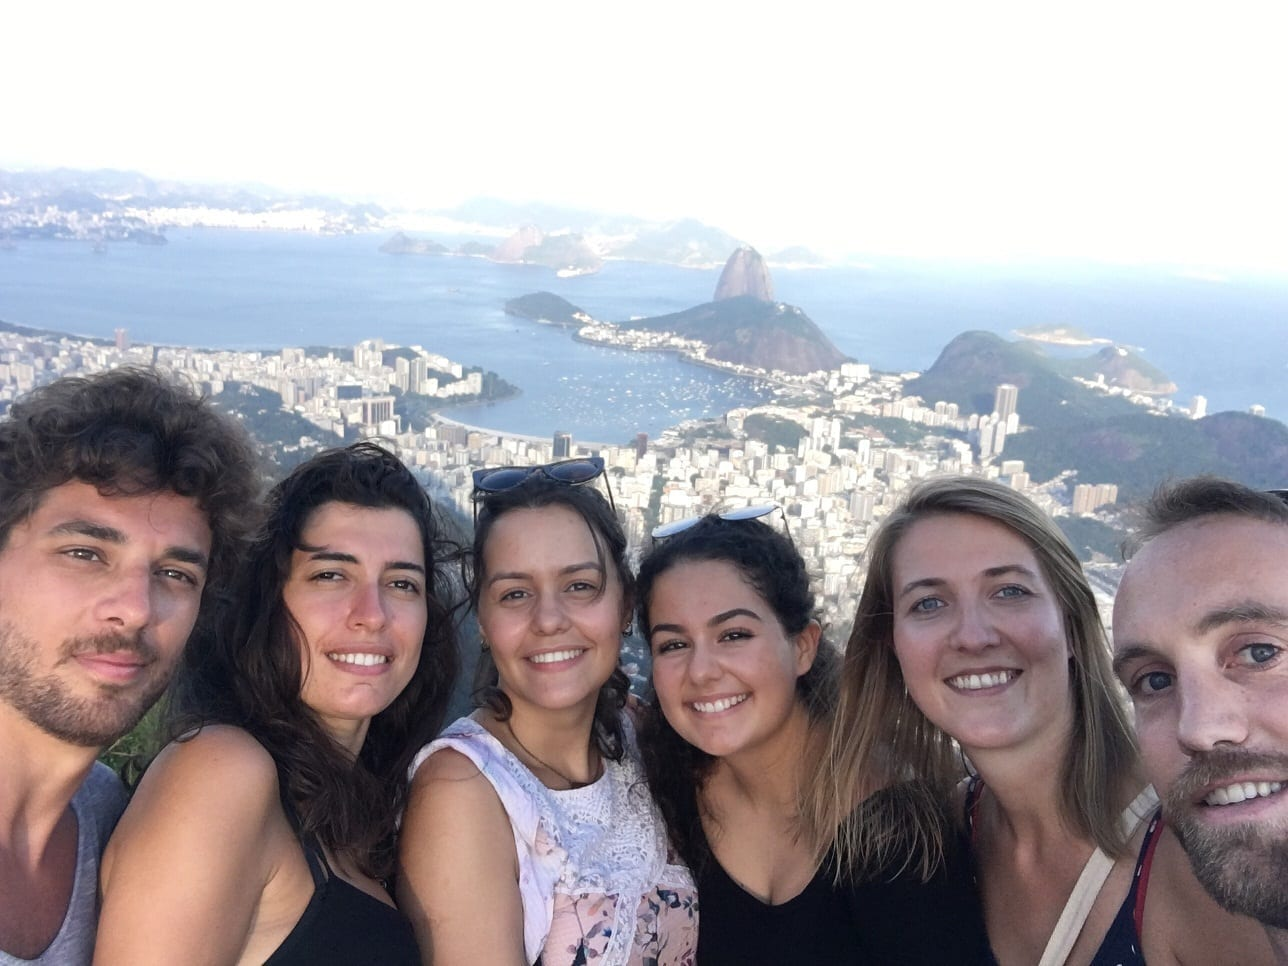 Students enjoying the amazing view from Corcovado Mountain